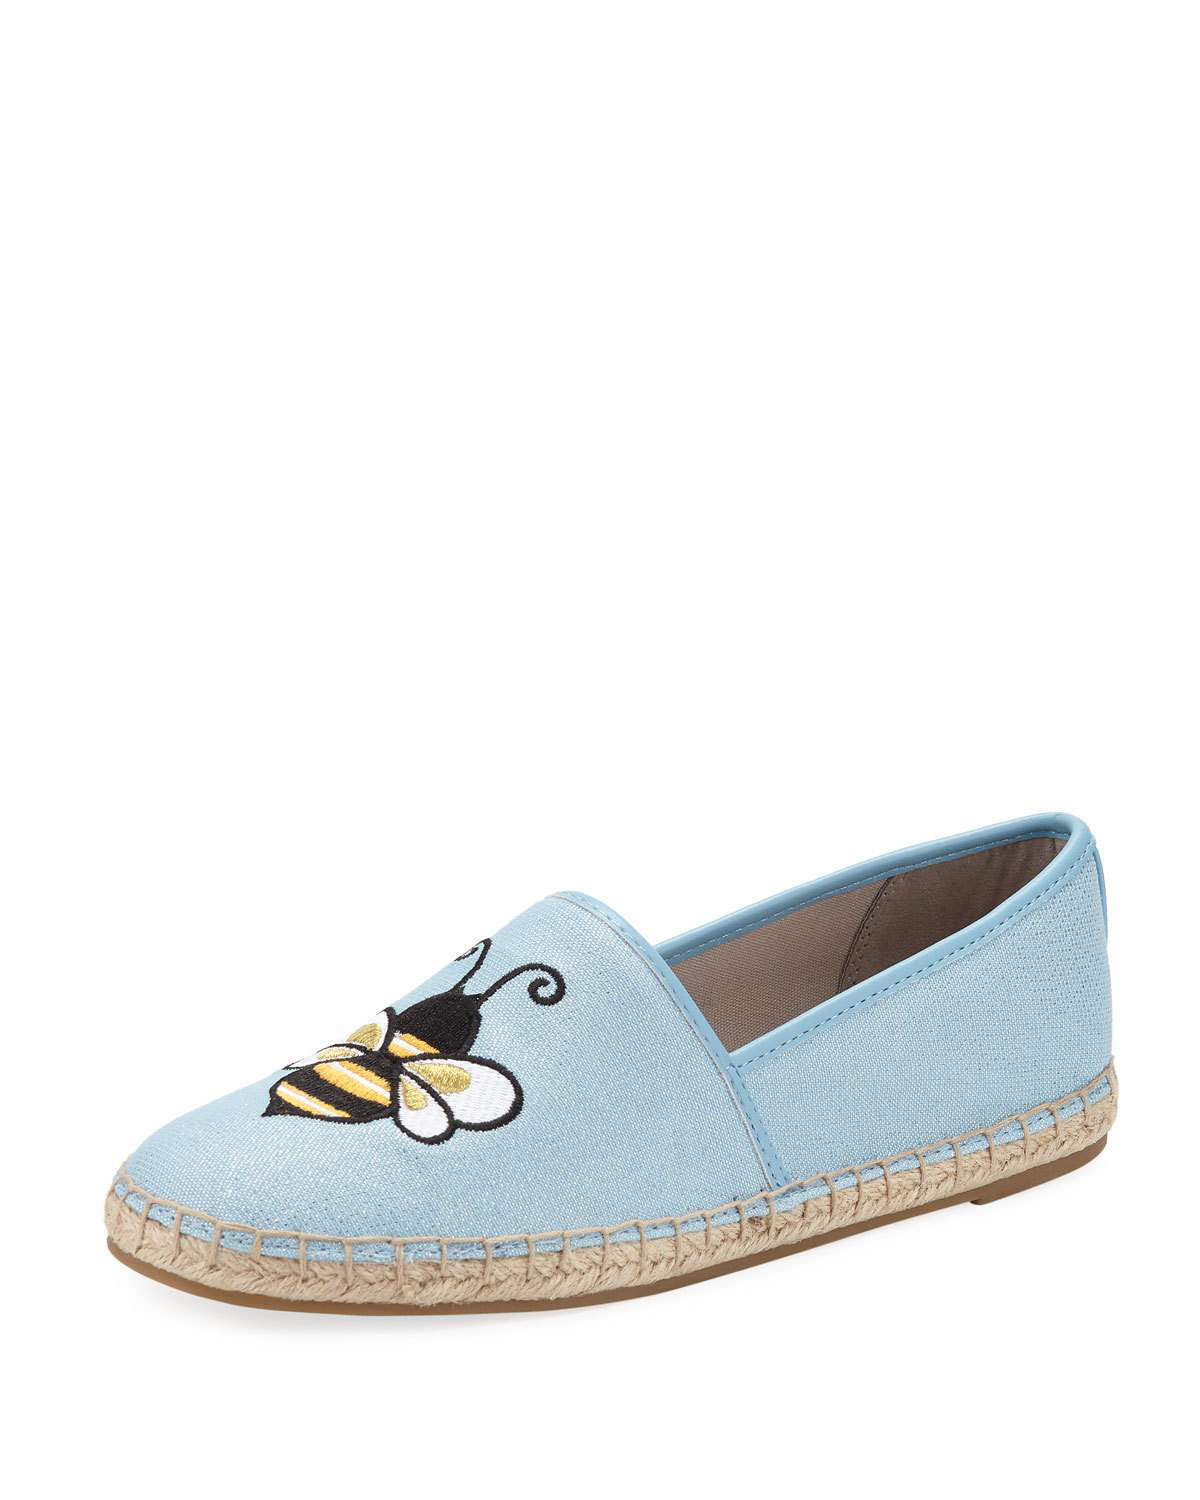 bc37903ee Circus By Sam Edelman Leni Bee Espadrilles In Blue